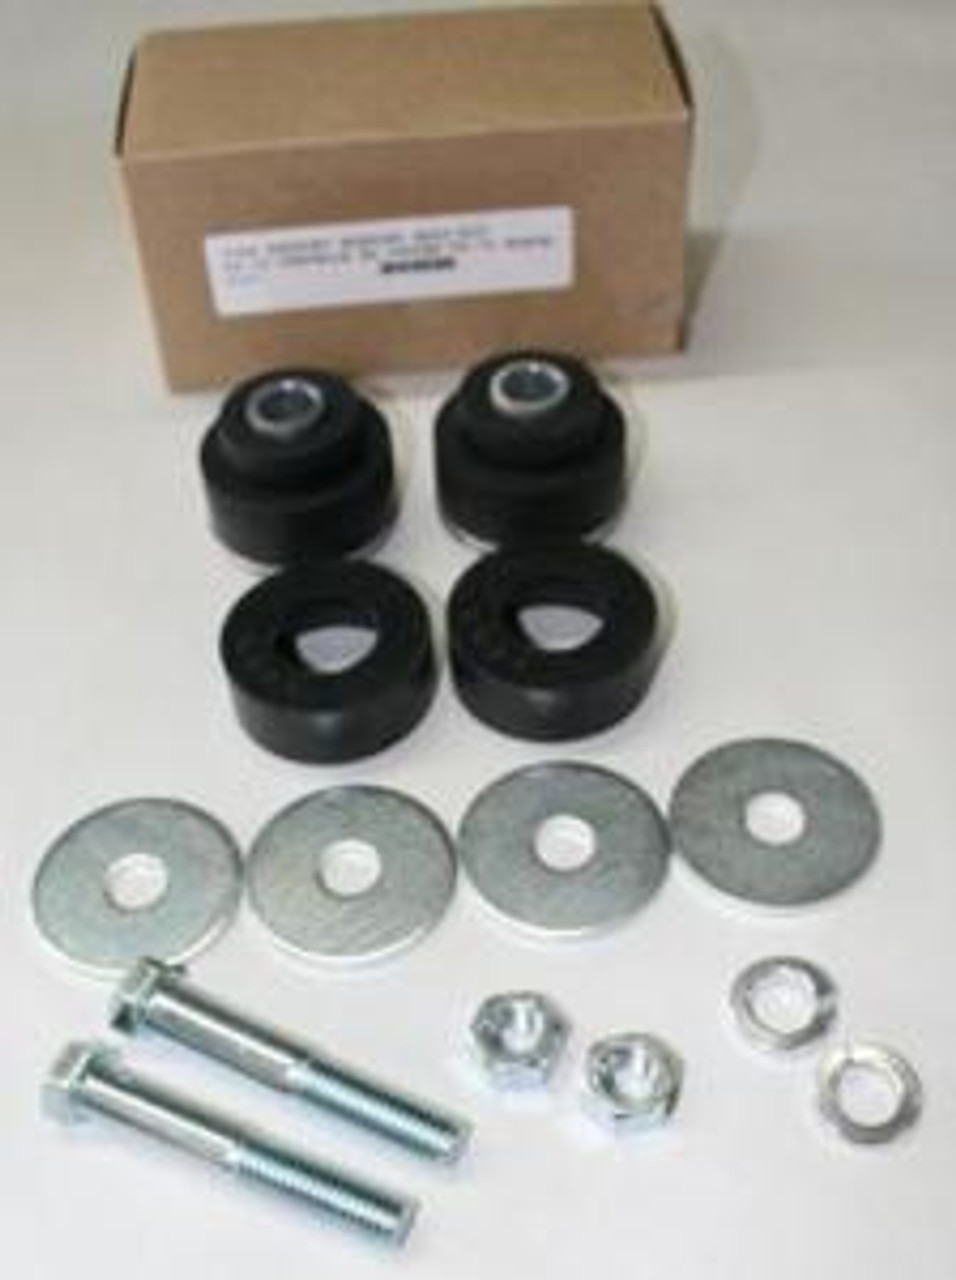 1968-72 Chevelle or El Camino Radiator Support Bushings and Bolts (Set)